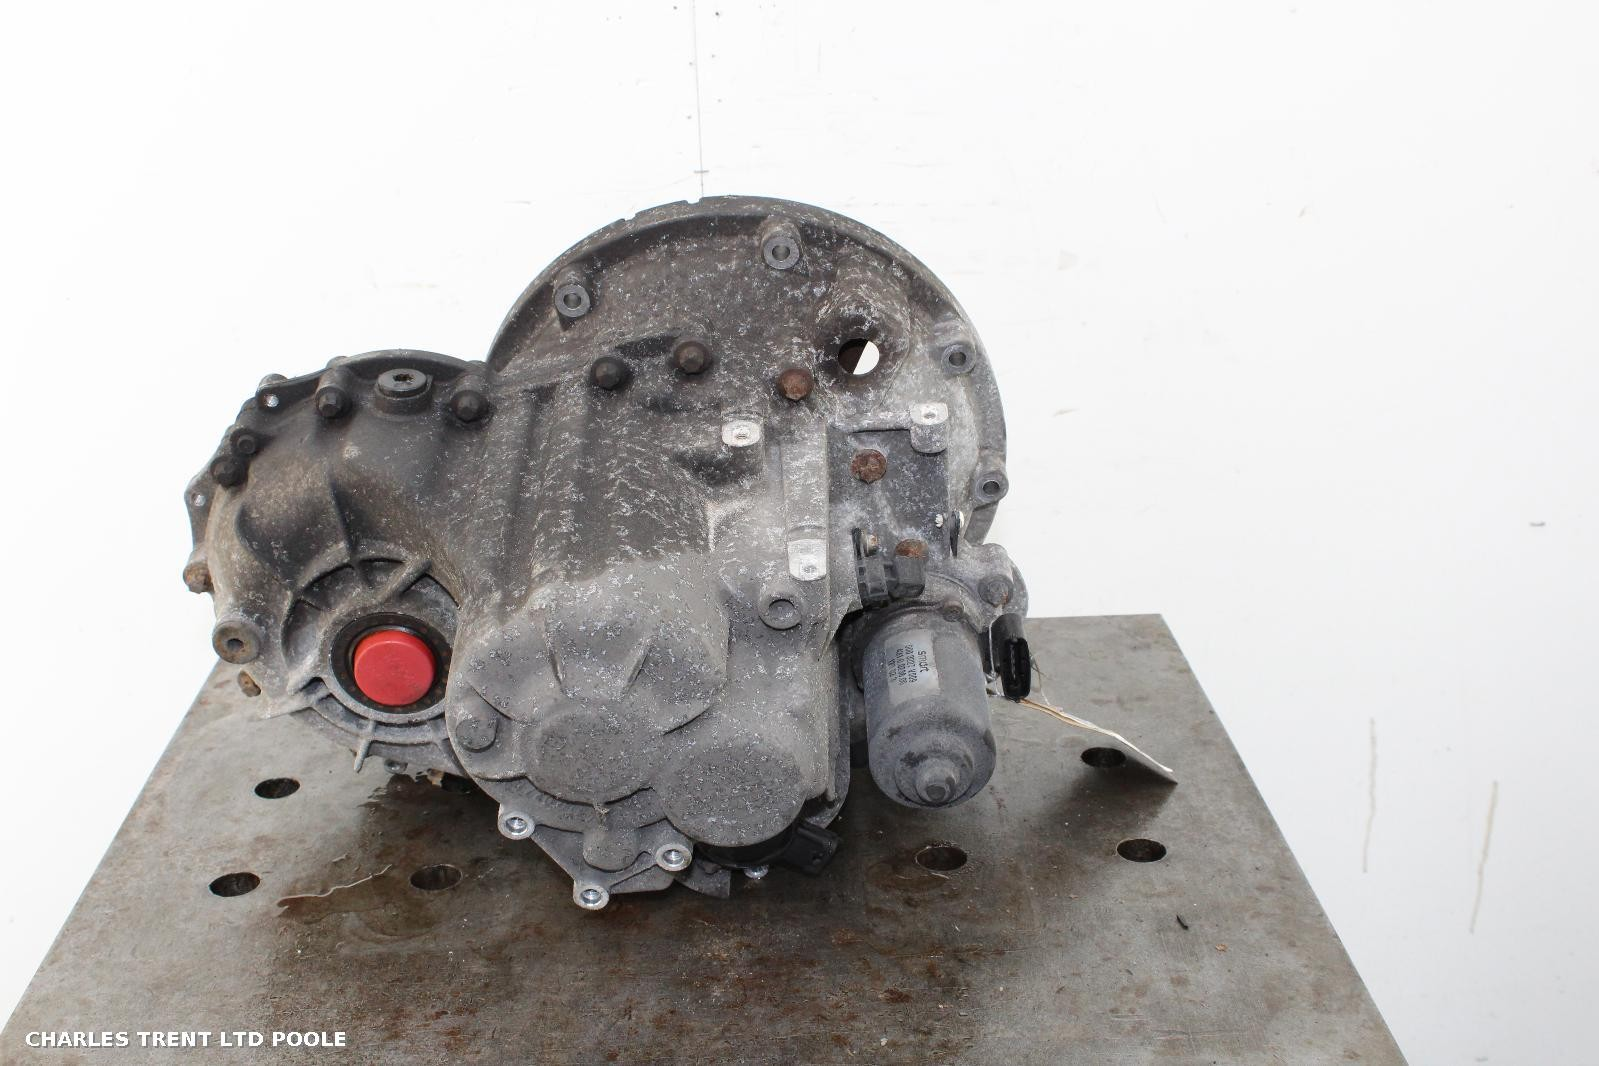 2002 - SMART - FORTWO / SMARTCAR - GEARBOXES / TRANSMISSIONS